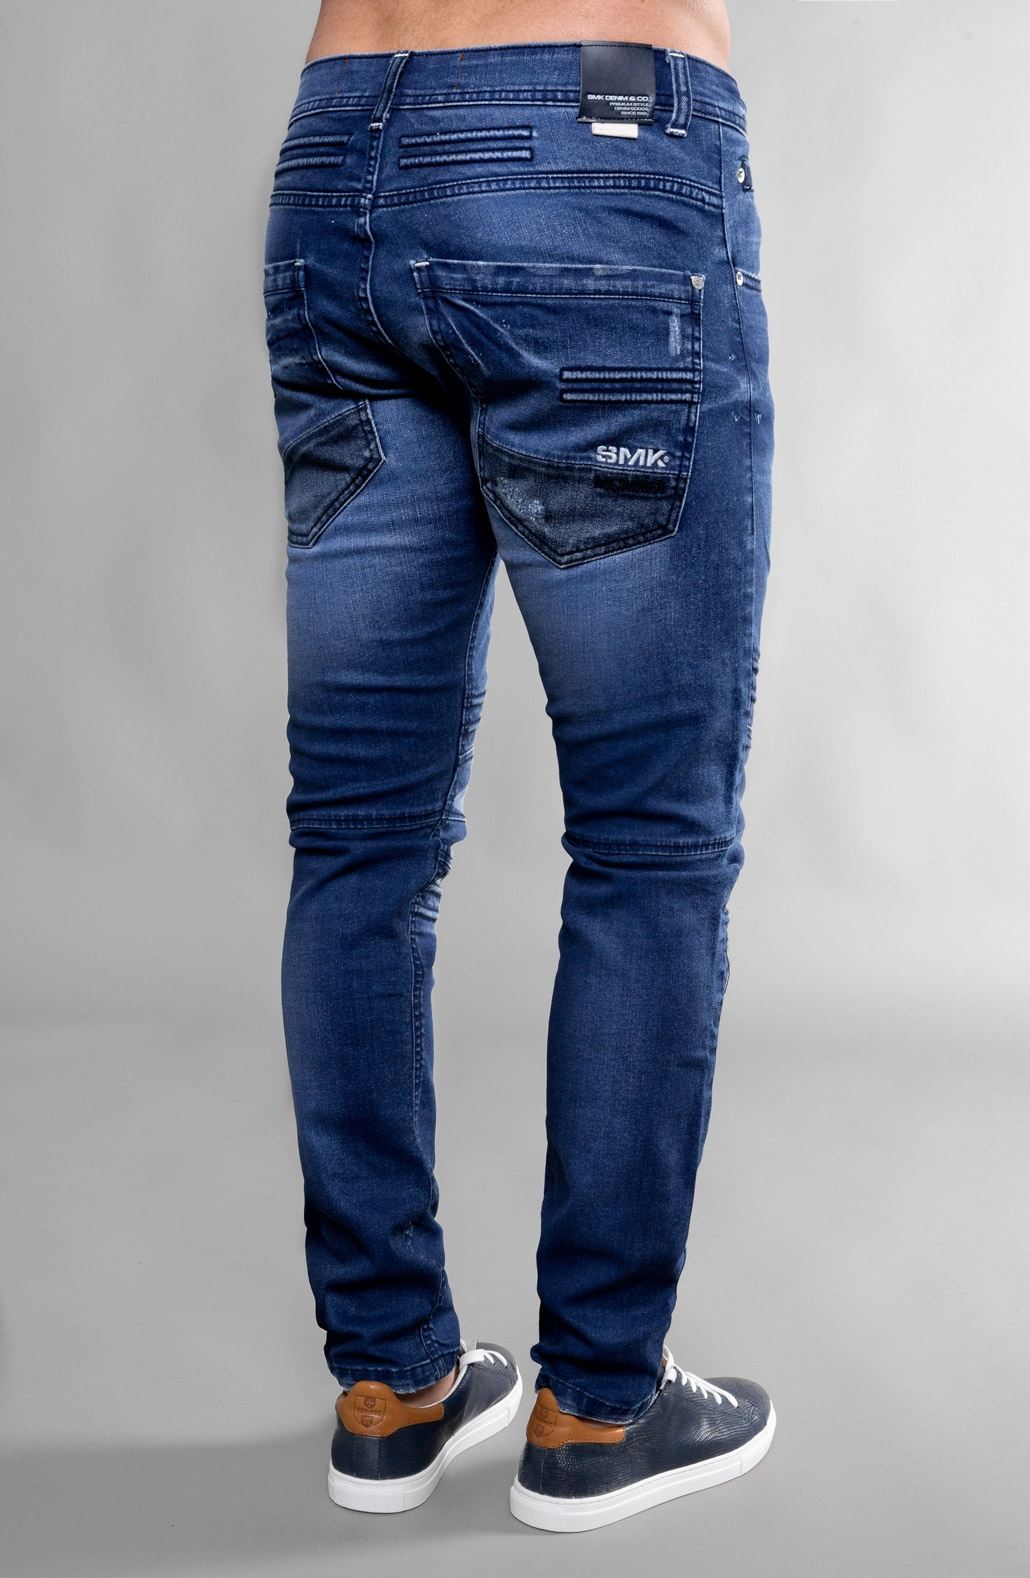 CALÇA SMK FAVORITE DENIM